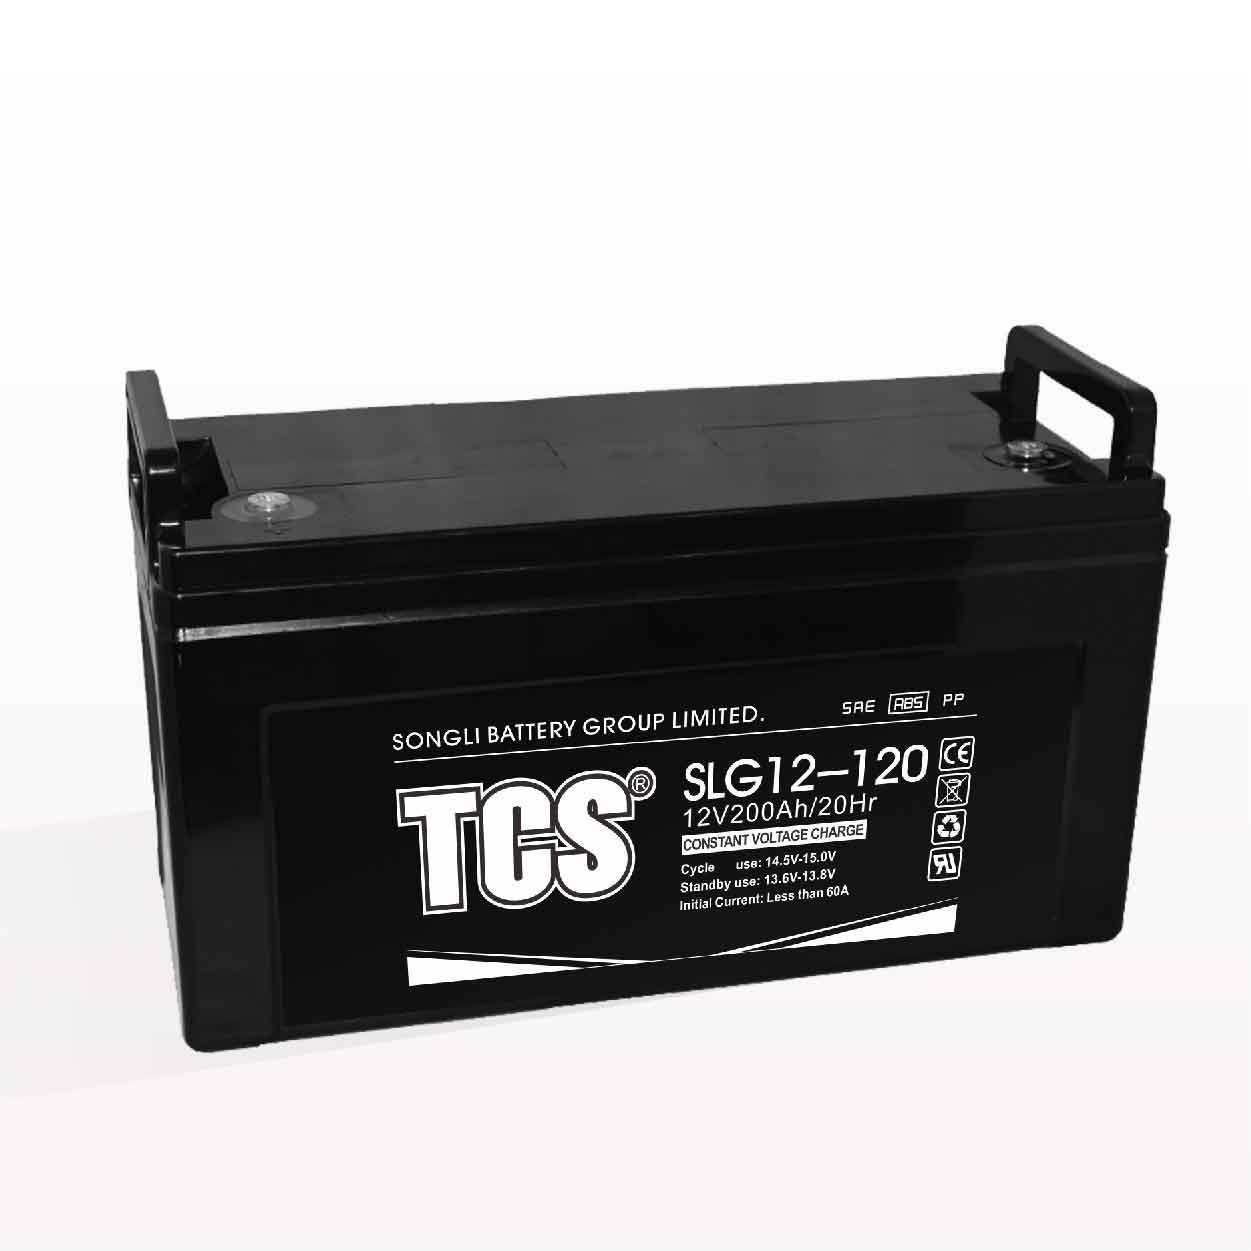 Storage battery gel battery SLG12-120